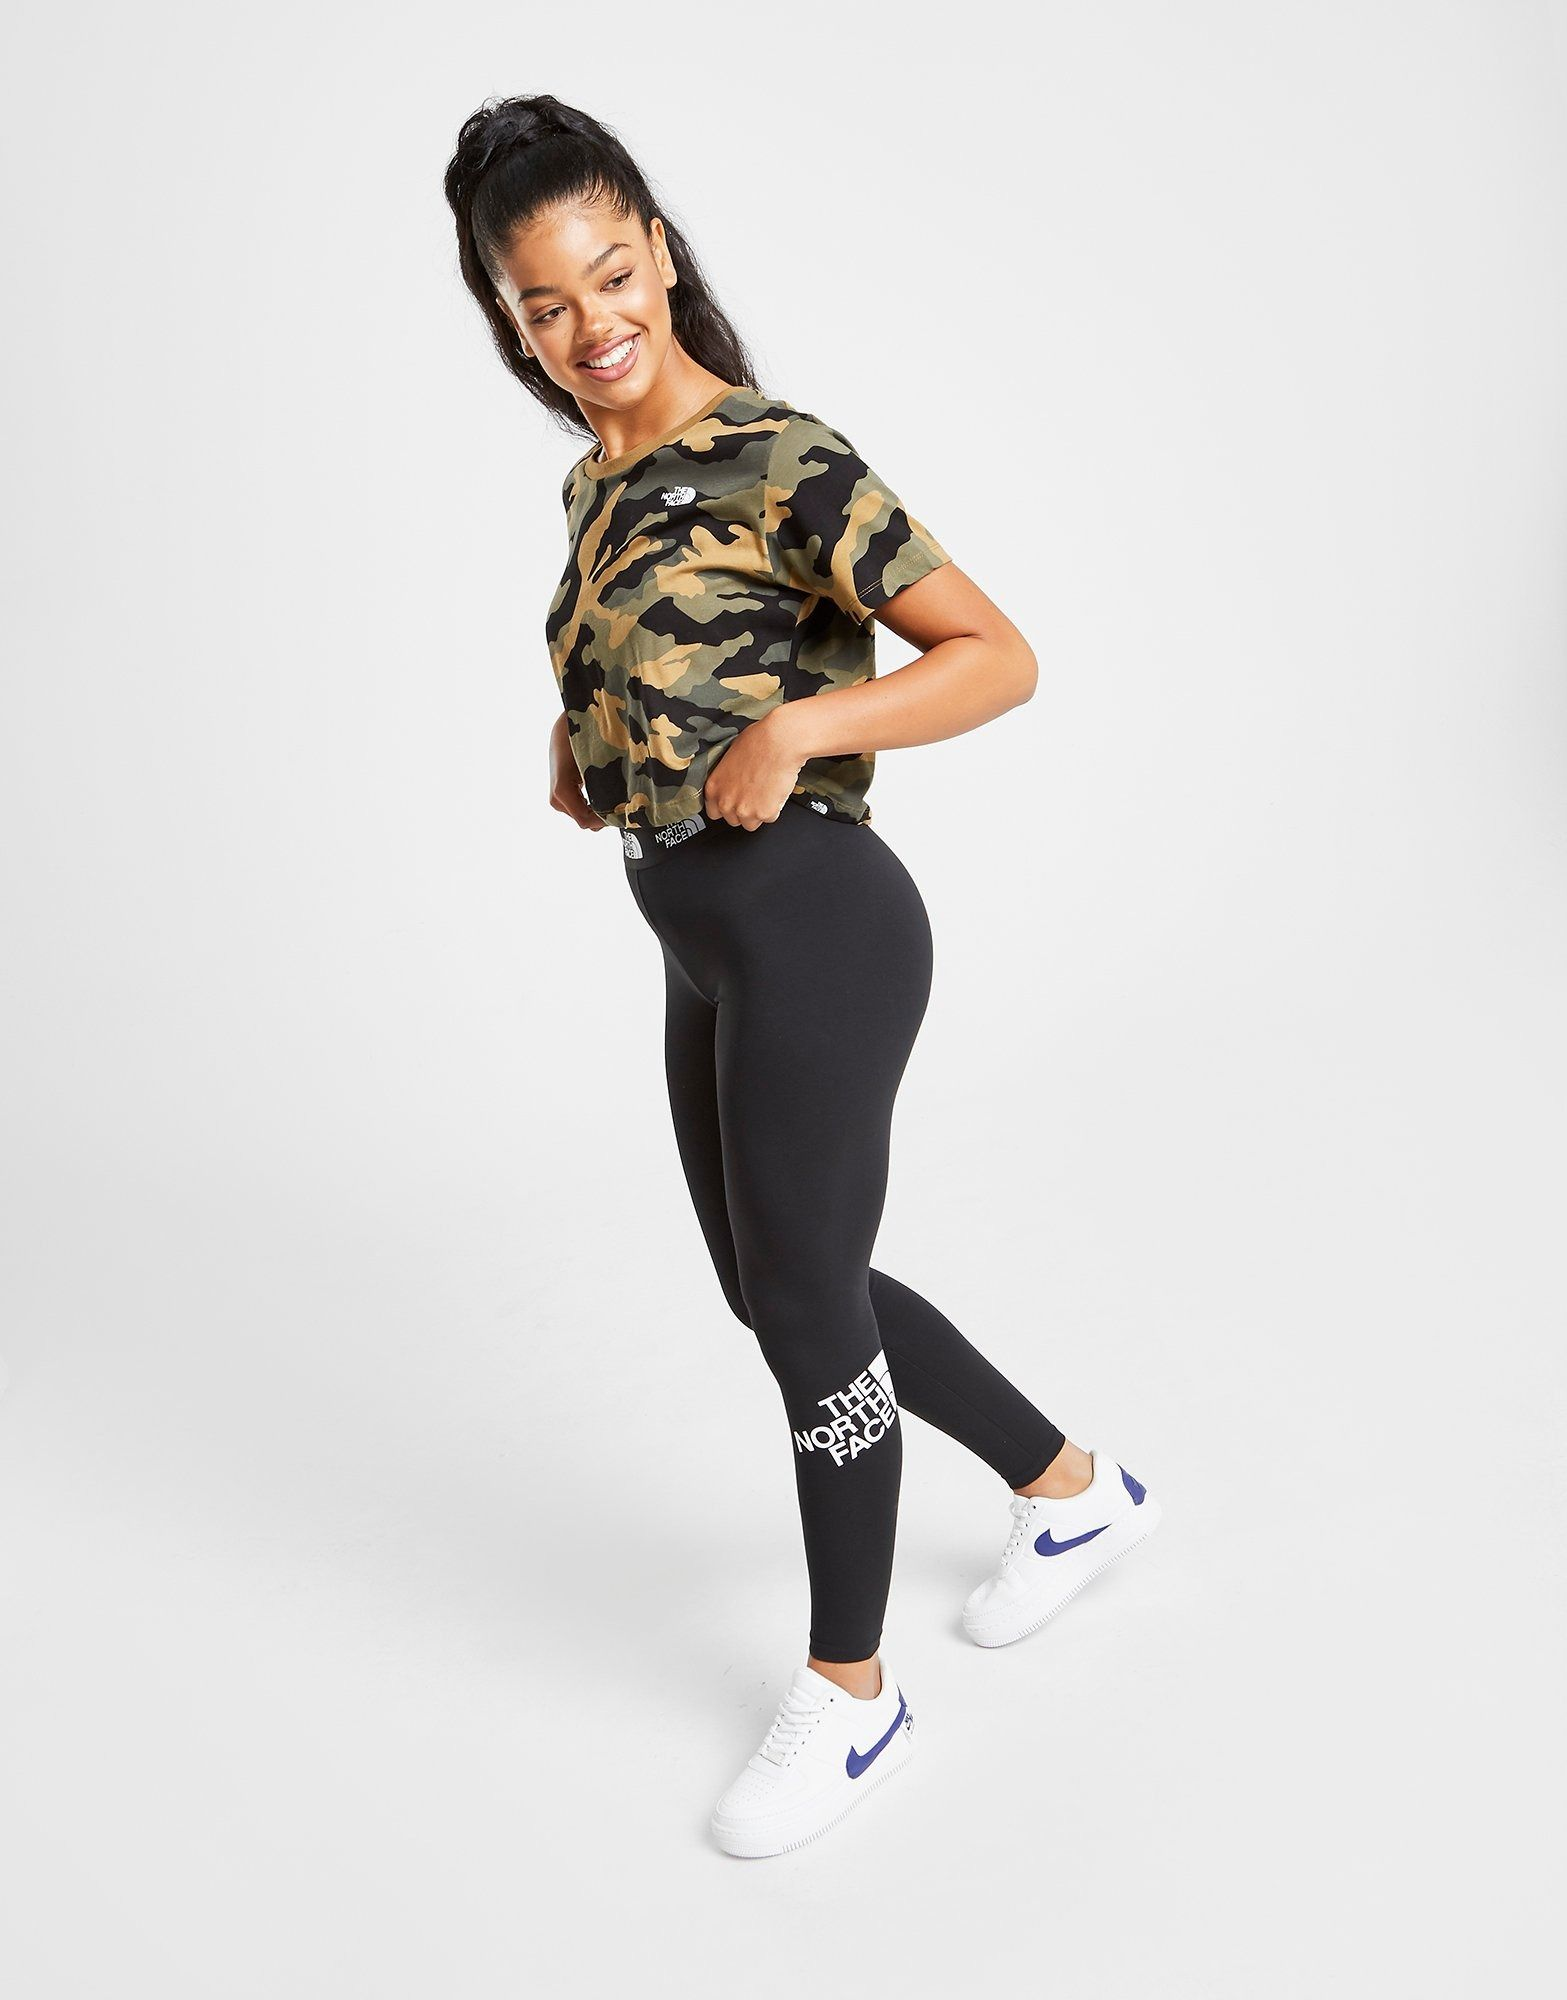 Pin by Naomi on 1 in 2020 Outfits with leggings, Waist